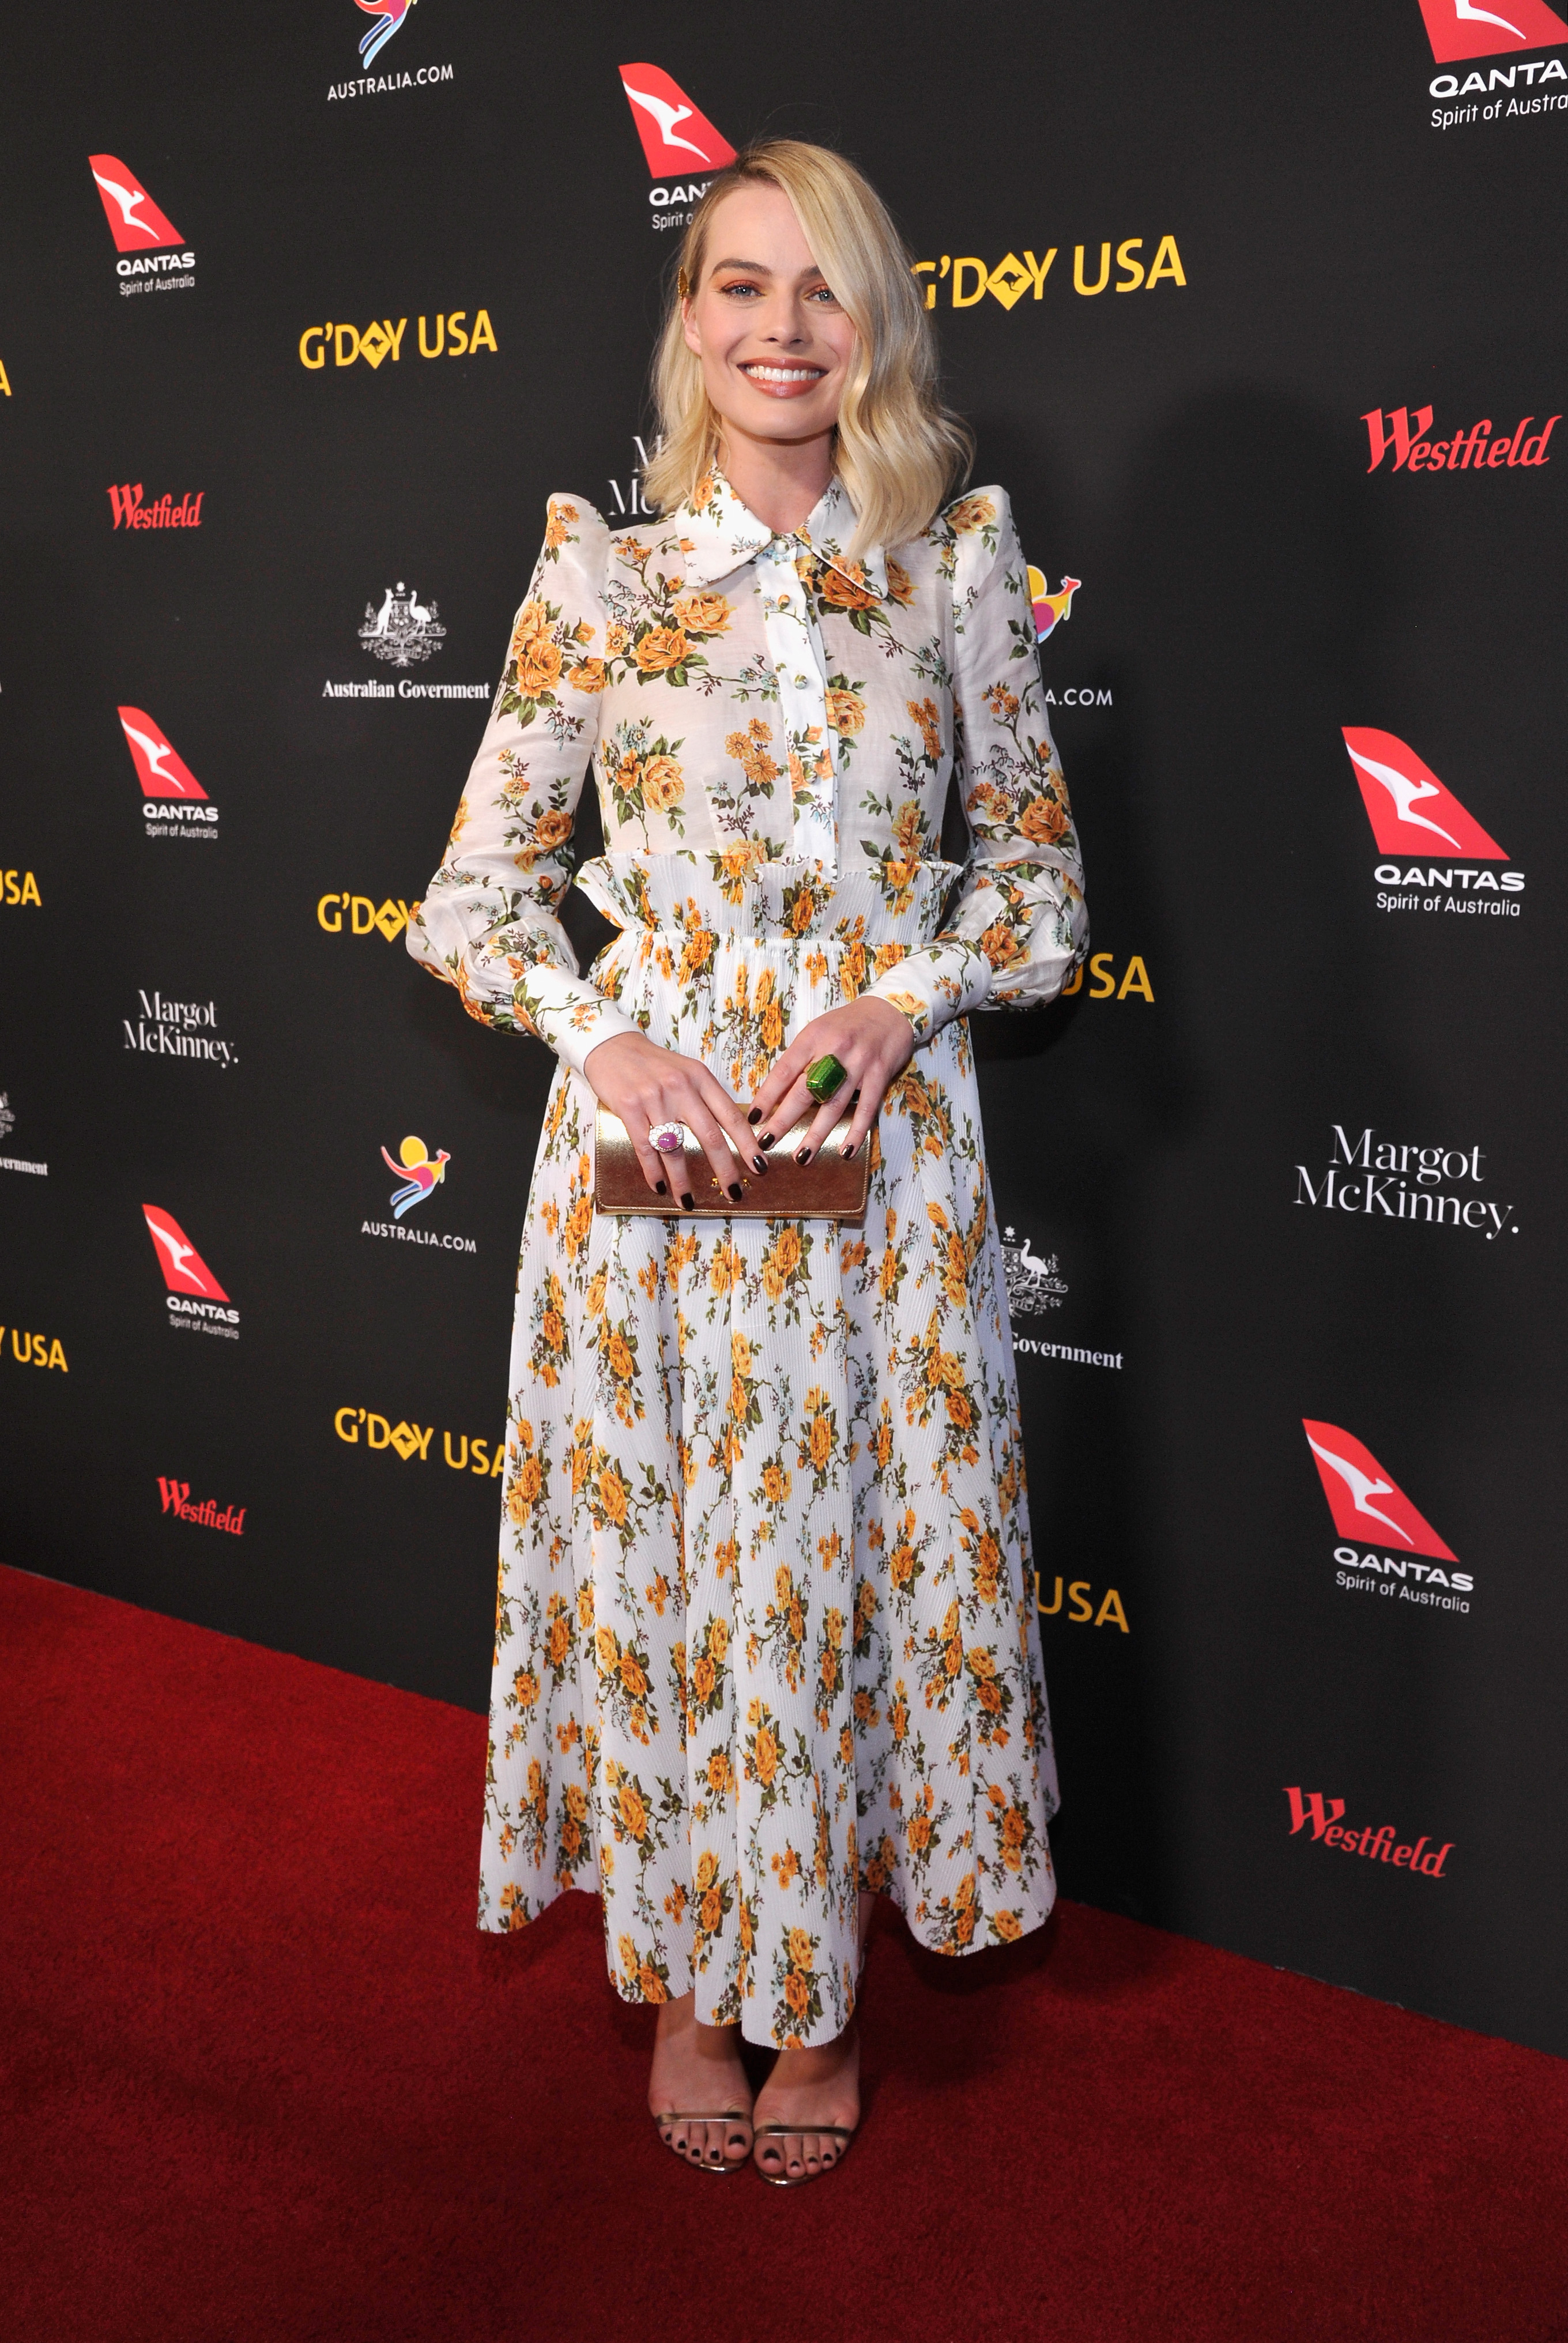 "<p>Australia's biggest names in the U.S have walked the red carpet for the annual G'Day USA gala overnight. </p> <p>The Aussie A-list brought their A-game to the star-studded event in Los Angeles.</p> <p>Margot Robbie, who lead the glamour in Zimmermann, was honoured at the event with an Excellence in Film Award.</p> <p>""You have made me a very proud and humble Aussie tonight,"" Queensland-born Robbie, who earlier in the week was nominated for a best actress Oscar for her performance in <em>I,Tonya</em>, told the crowd.</p> <p>There were no dry eyes in the house when actor Colin Farrell presented the late Heath Ledger's father, Kim, with a lifetime achievement award for his son who died of an overdose ten years ago last week.</p> <p>The G'Day USA gala is in its 15th year and is the highlight of events held across America promoting Australian businesses, tourism, film, food and wine.</p> <p>Click through to take a take a look at the Aussie's wowing on the red carpet.</p>"